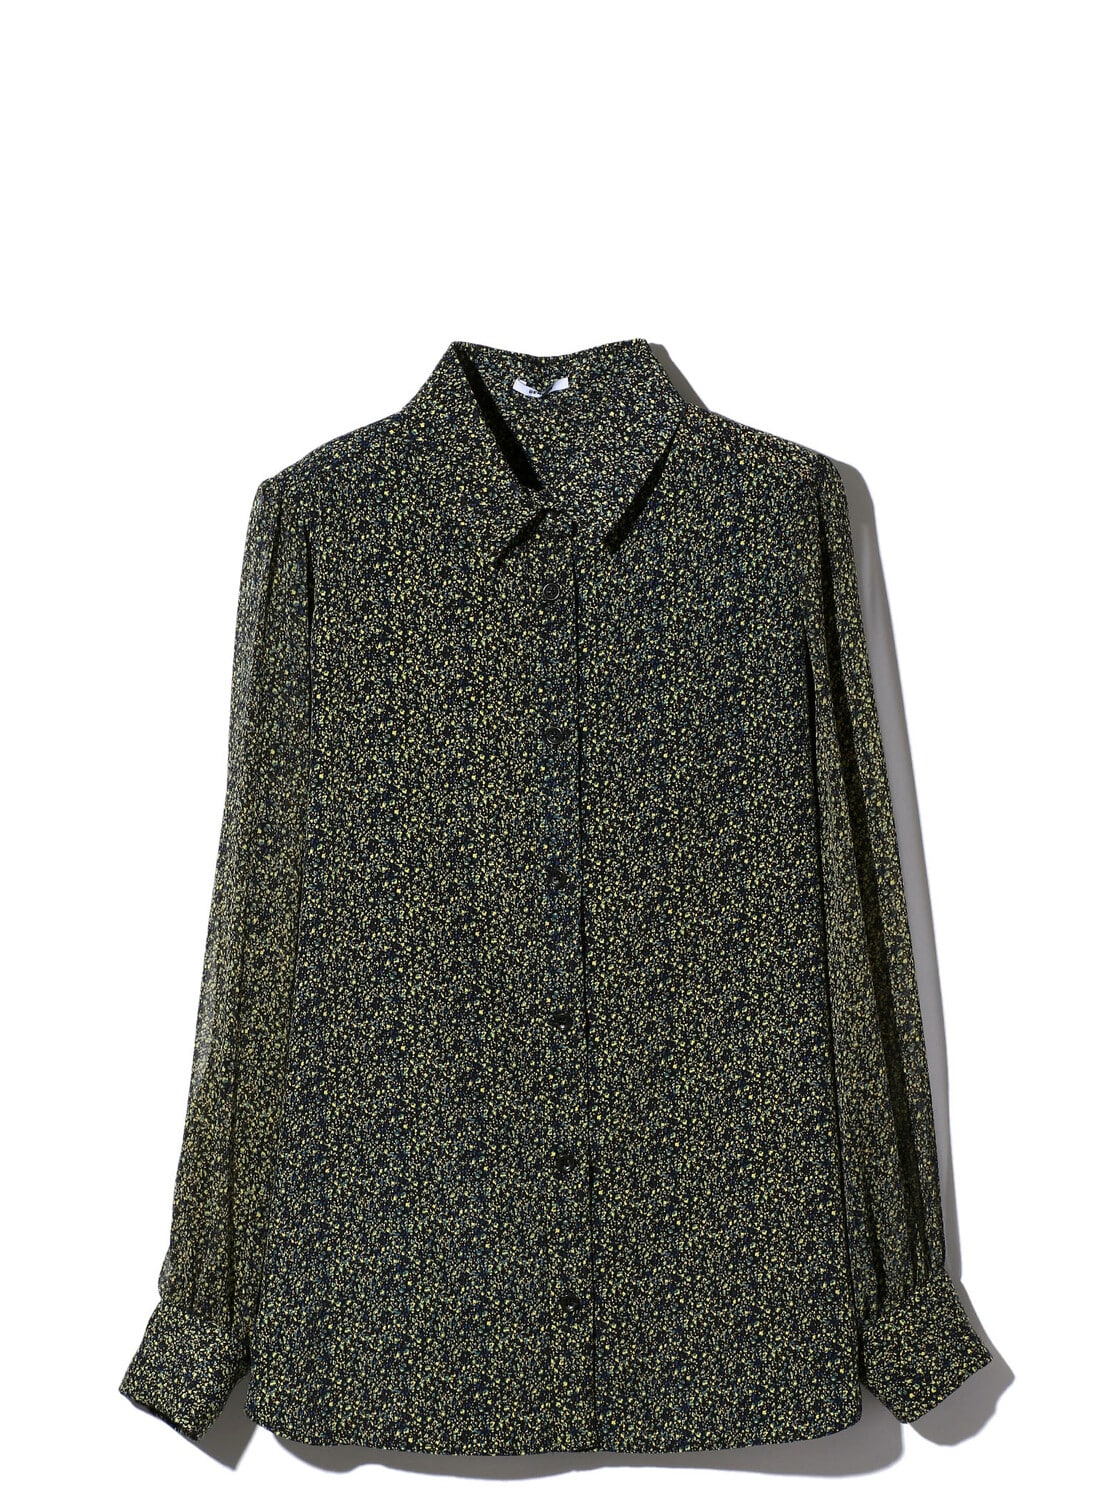 【日本限定】RANDOM DOT BLOUSE